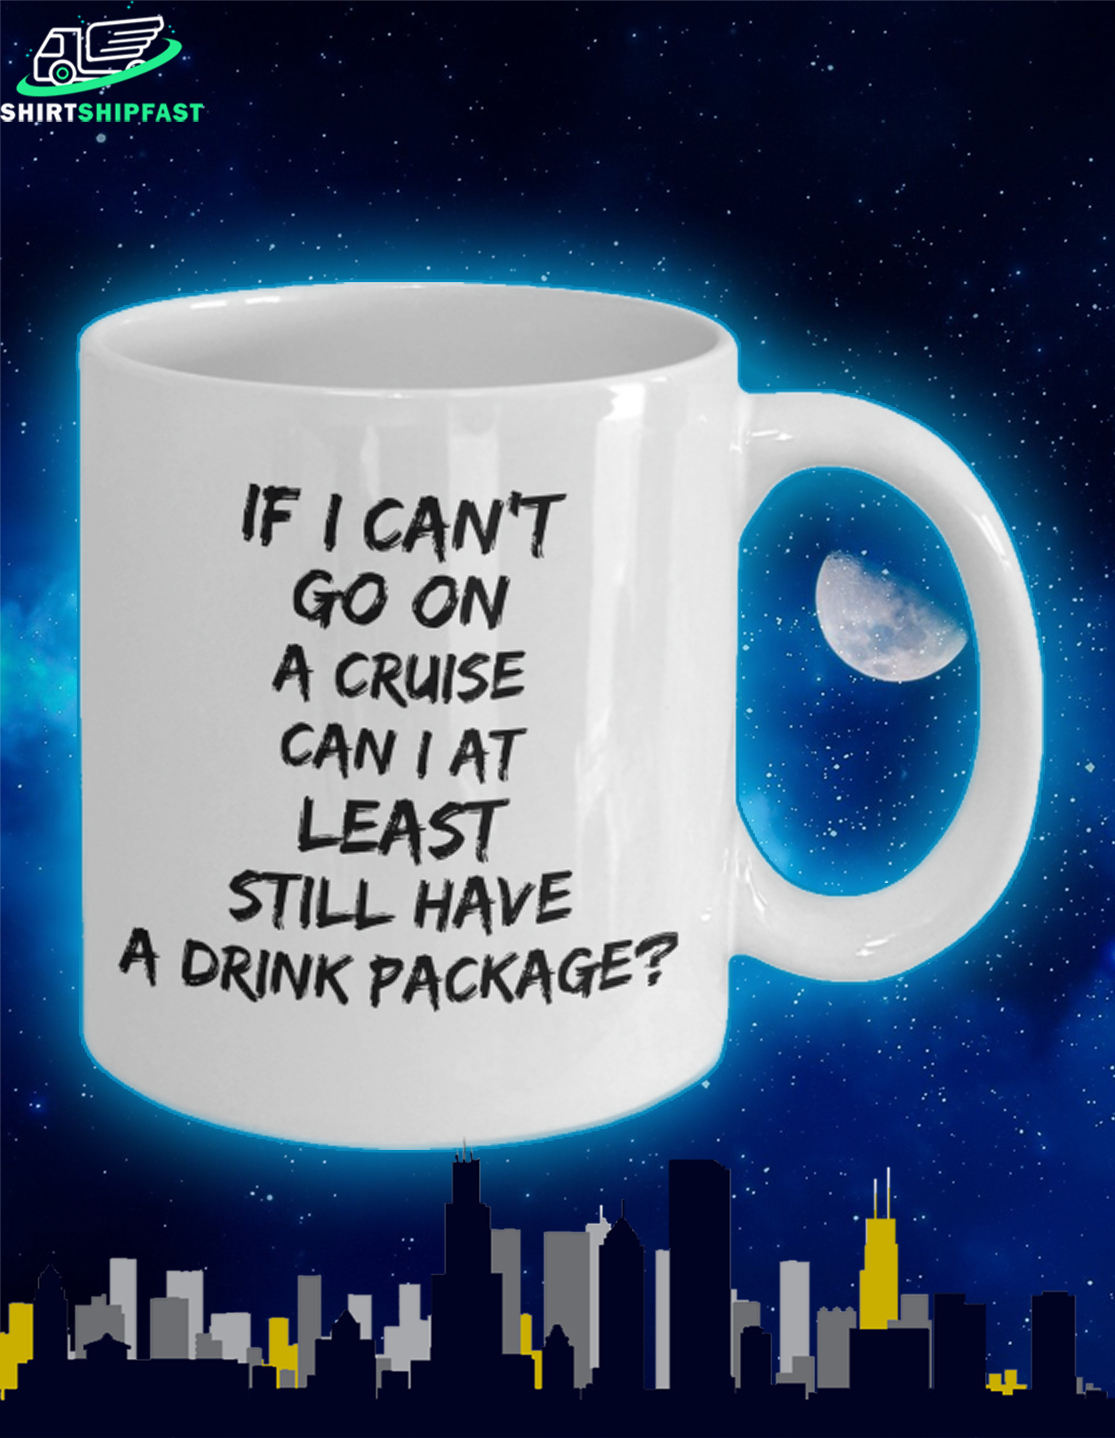 If I can't go on a cruise can I at least still have a drink package mug - Picture 2